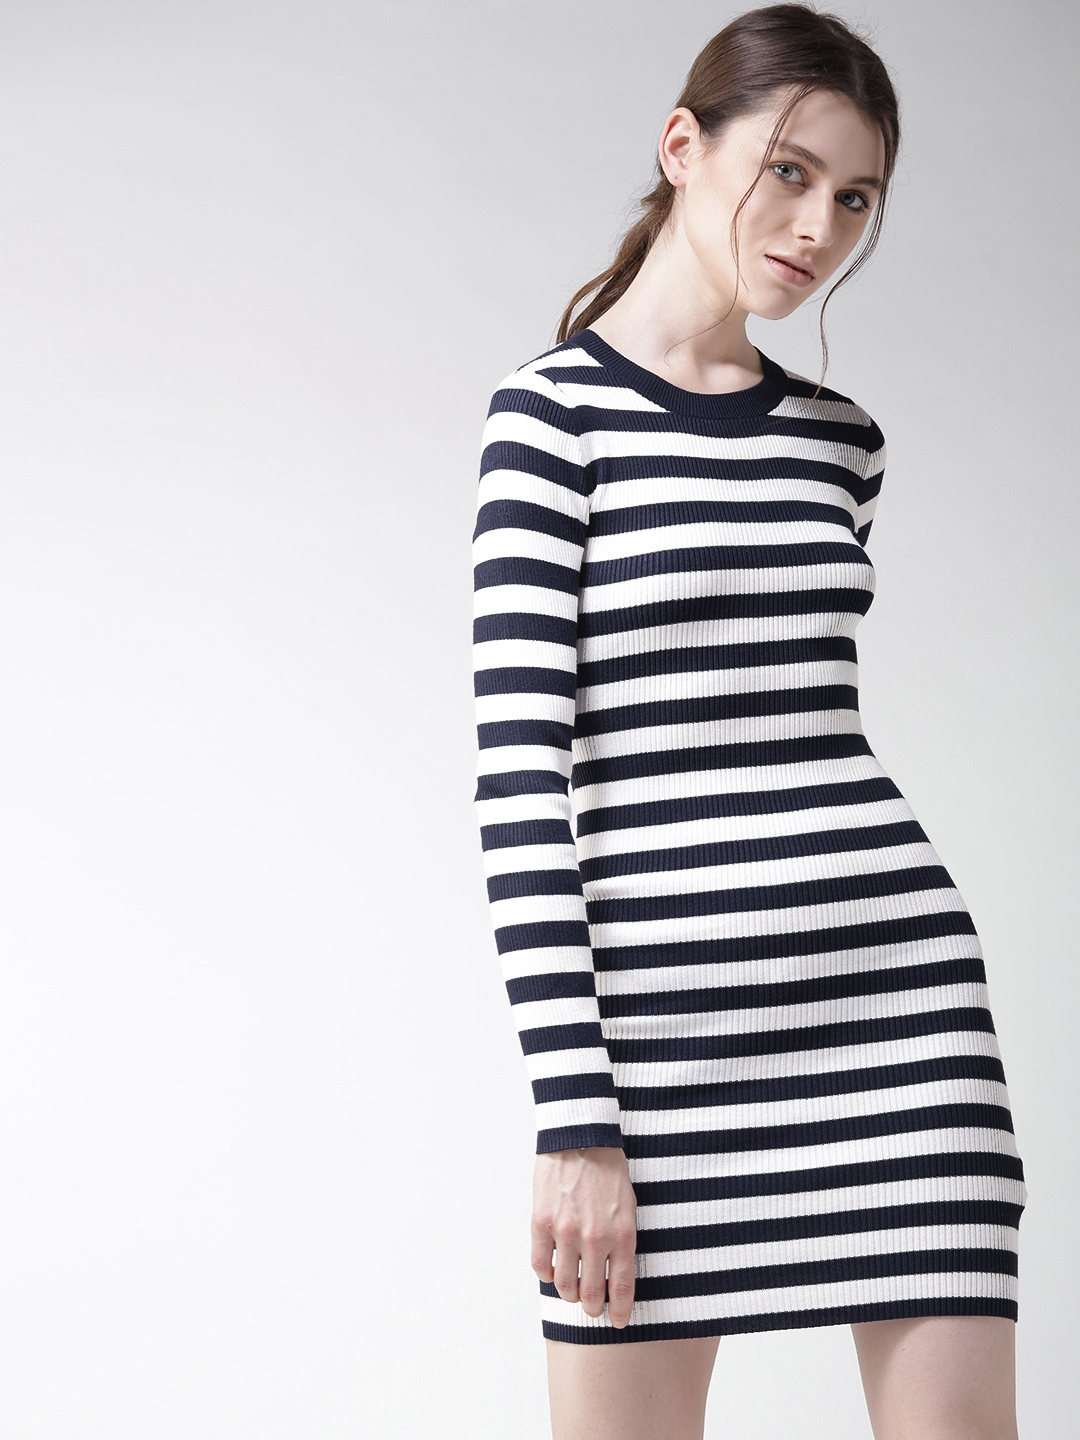 aee0aa27a35 Buy FOREVER 21 Women Navy & White Striped Bodycon Dress - Dresses ...